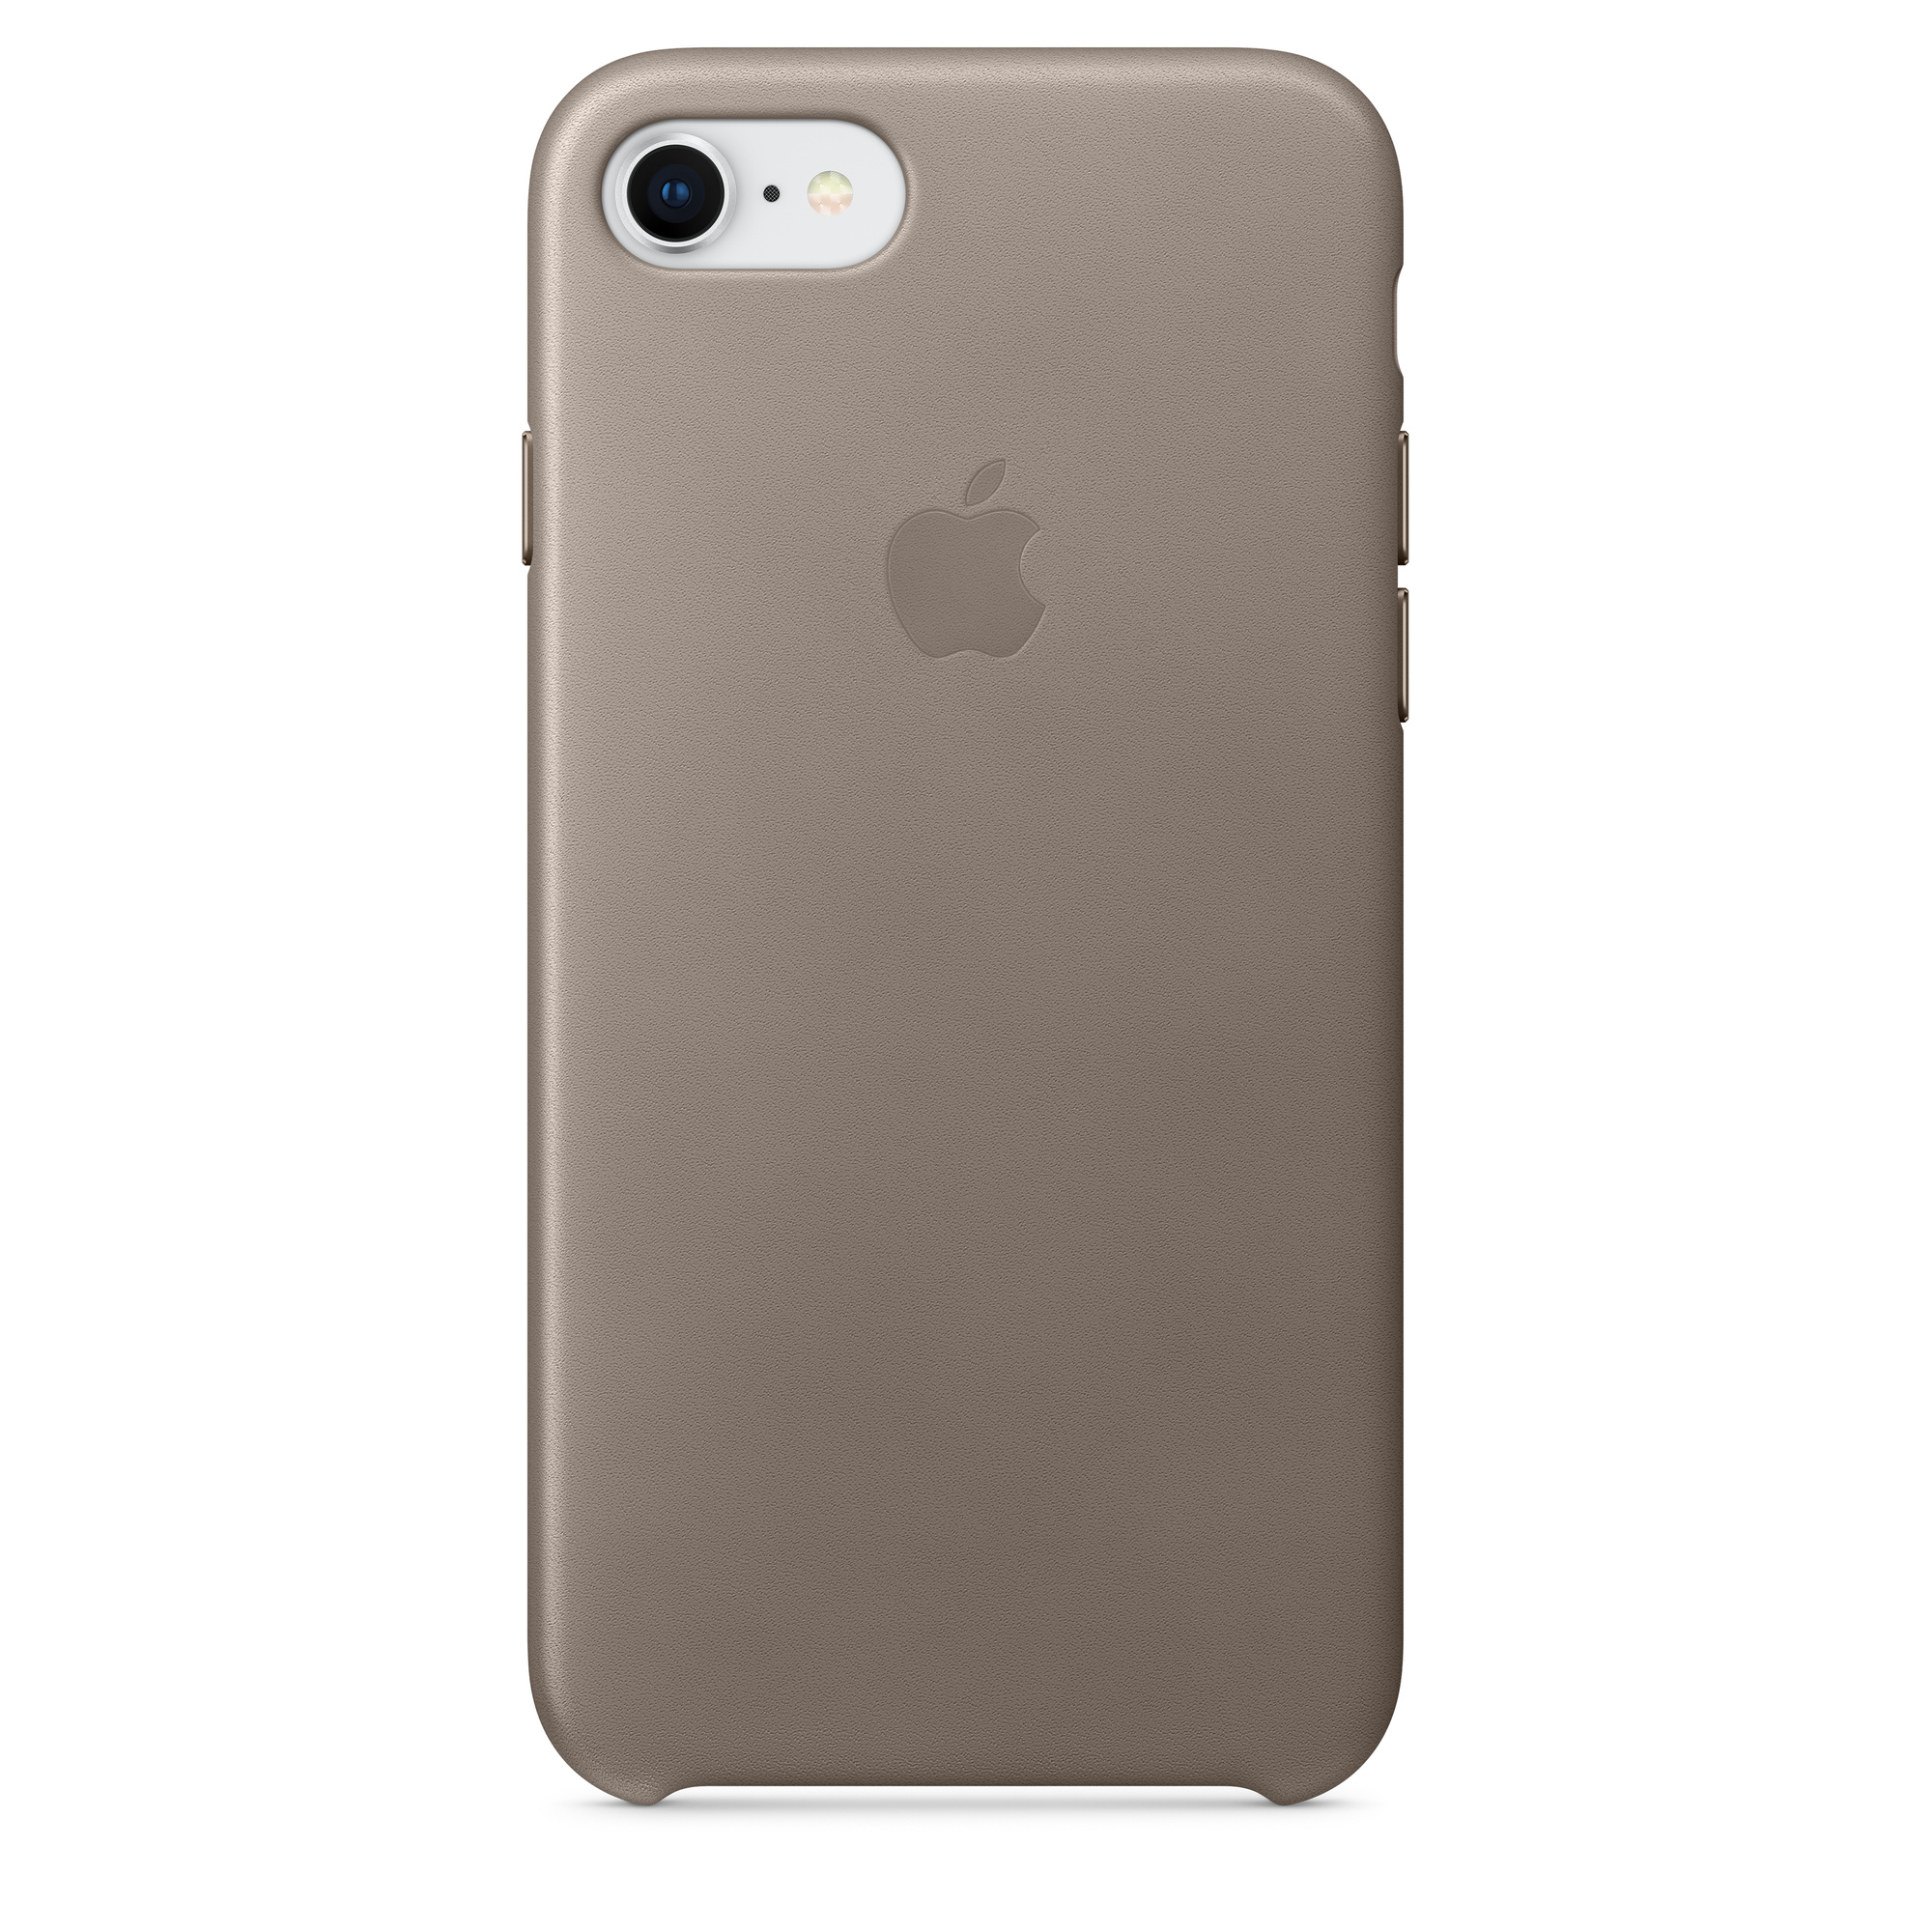 c69d78d5f9d9 iPhone 8 / 7 Leather Case - Taupe